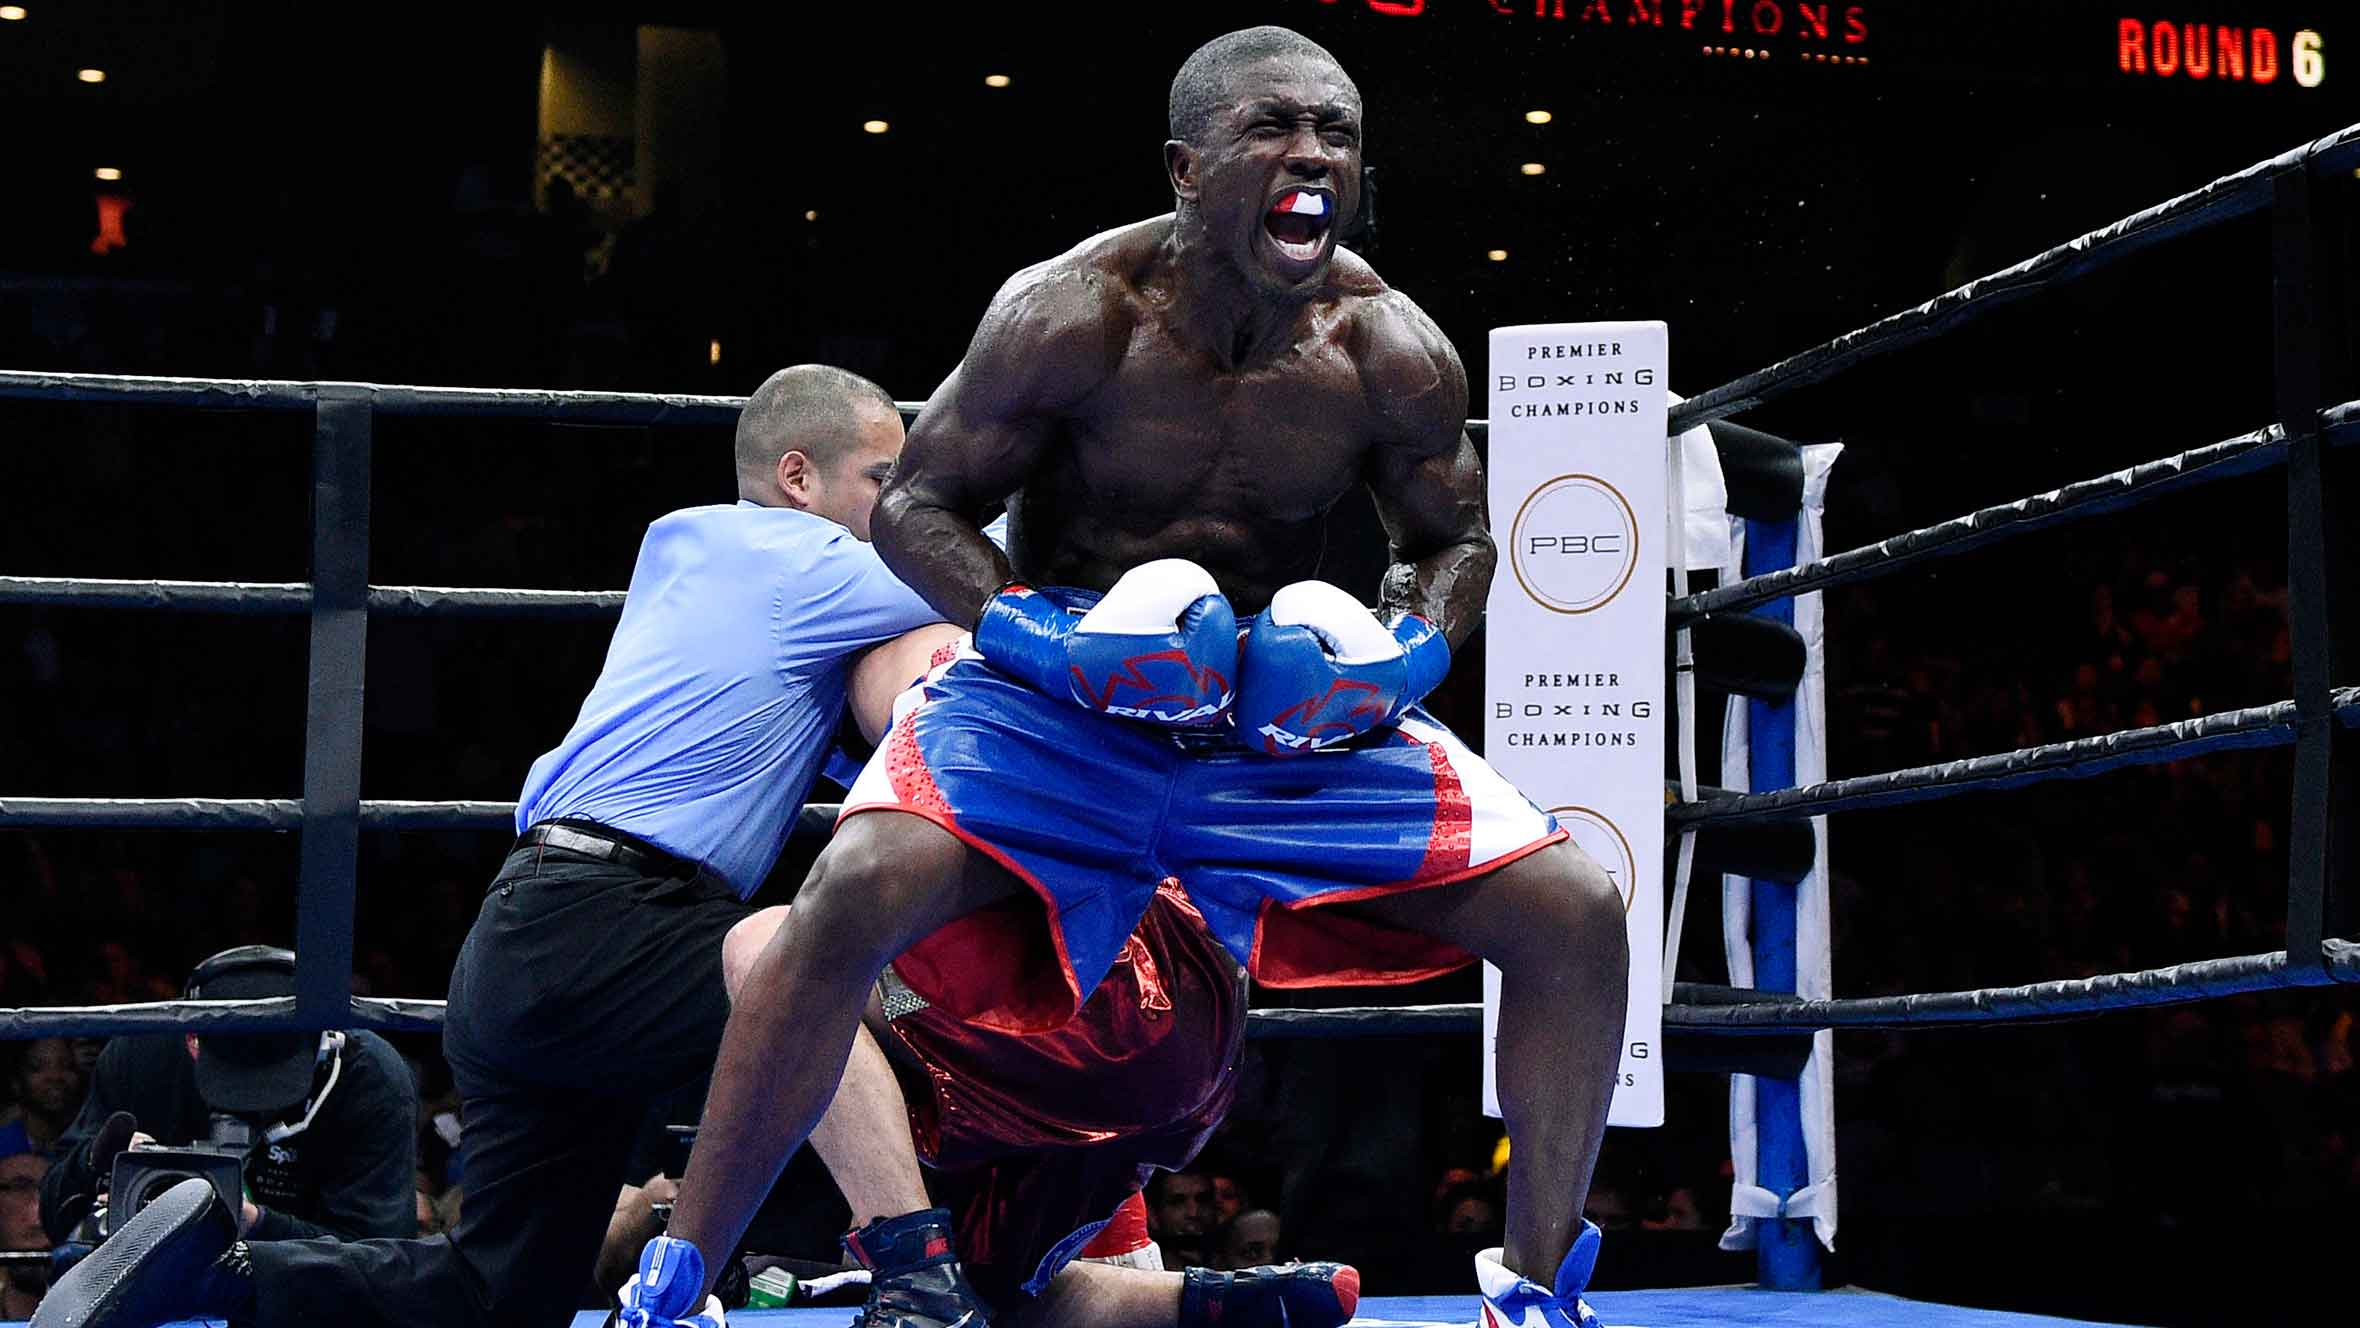 Andre Berto - an outstanding American boxer with a touching love for Haiti